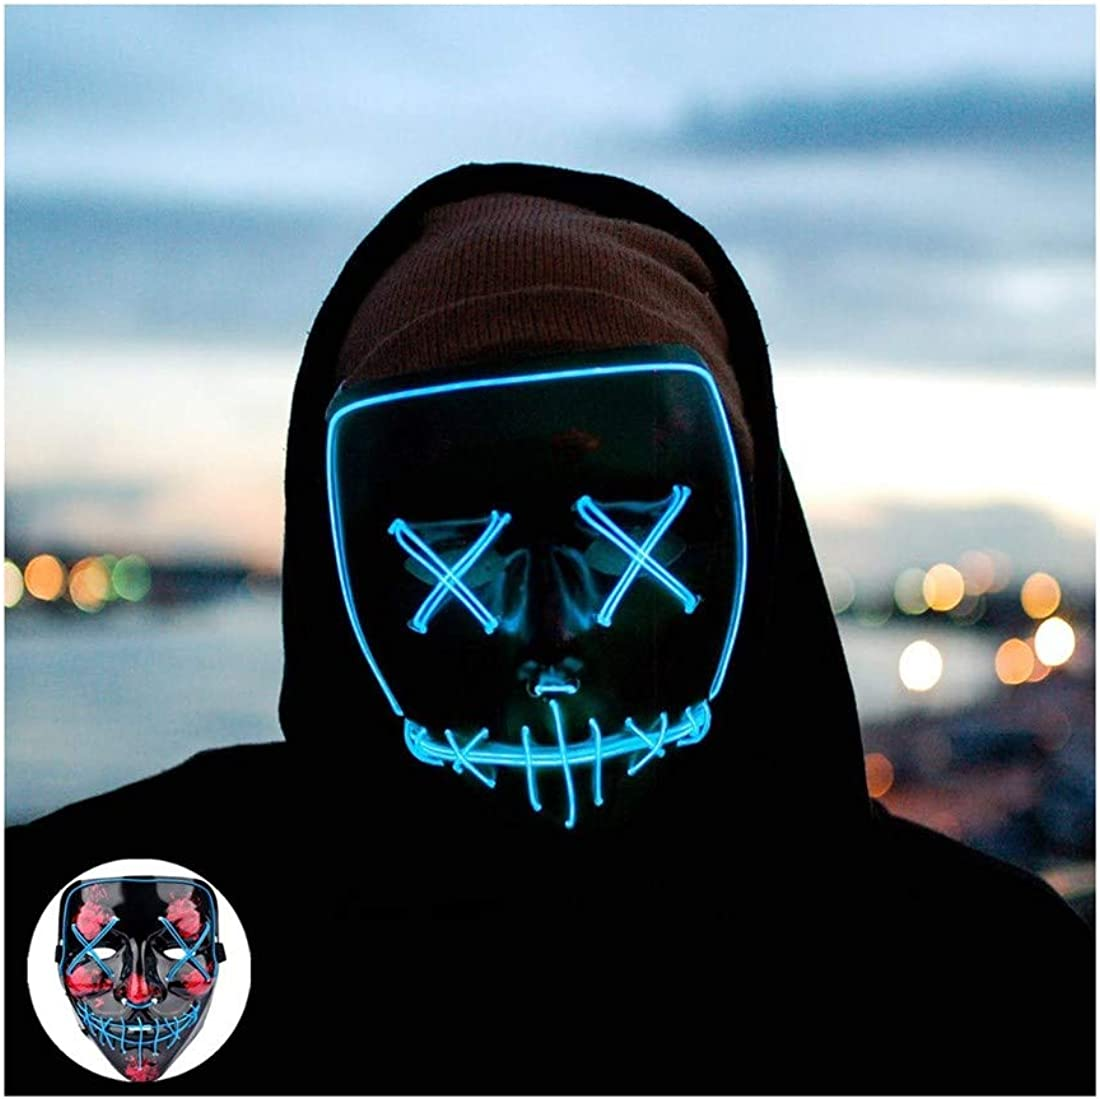 Halloween Mask LED Halloween Costume LED Glow Scary Light Up Masks for Festival Party Carnival Costume Christmas Cosplay Glow in Dark Gift Green